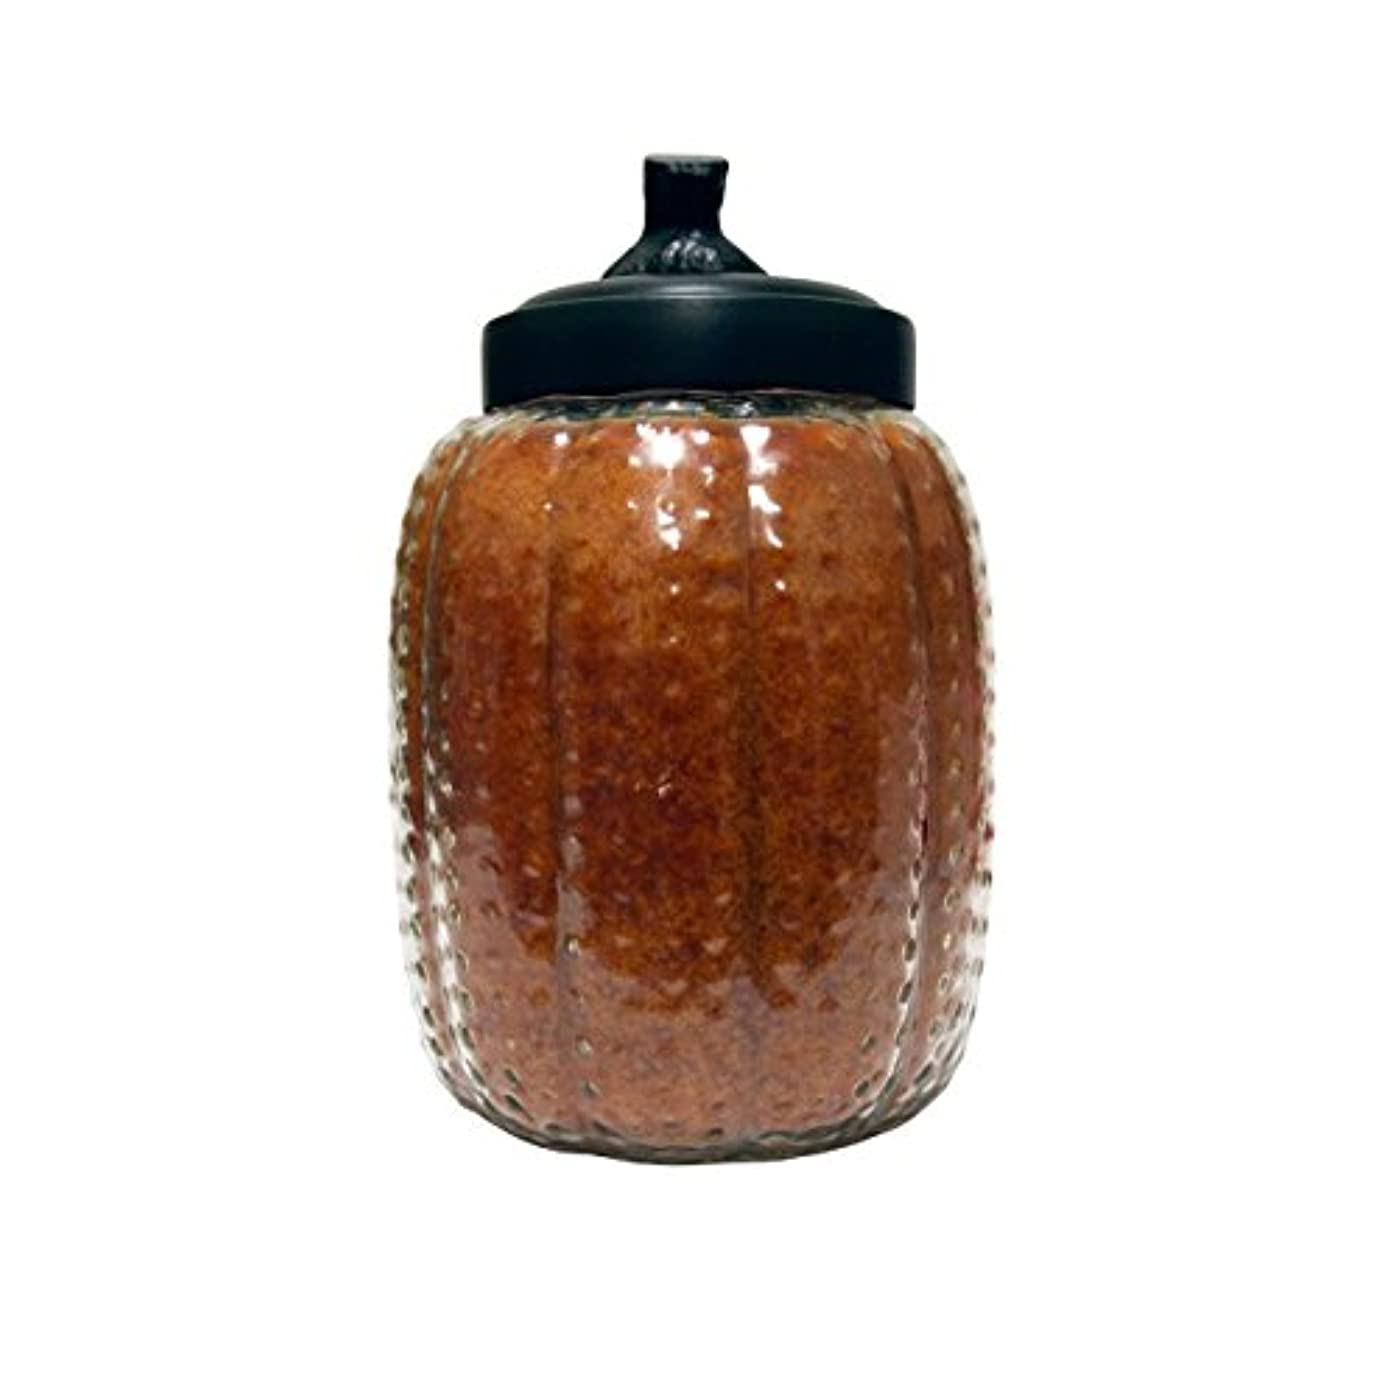 パラシュート映画偽造A Cheerful Giver Autumn Orchards Pumpkin Jar Candle, 26-Ounce by Cheerful Giver [並行輸入品]